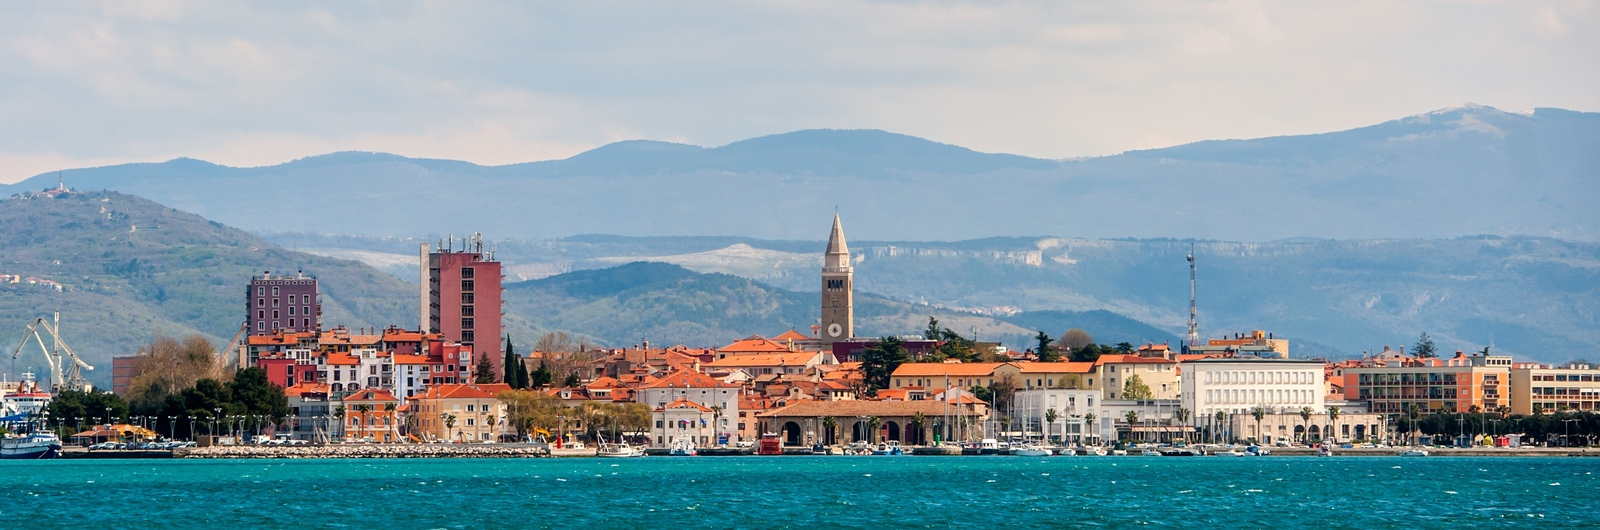 koper city header